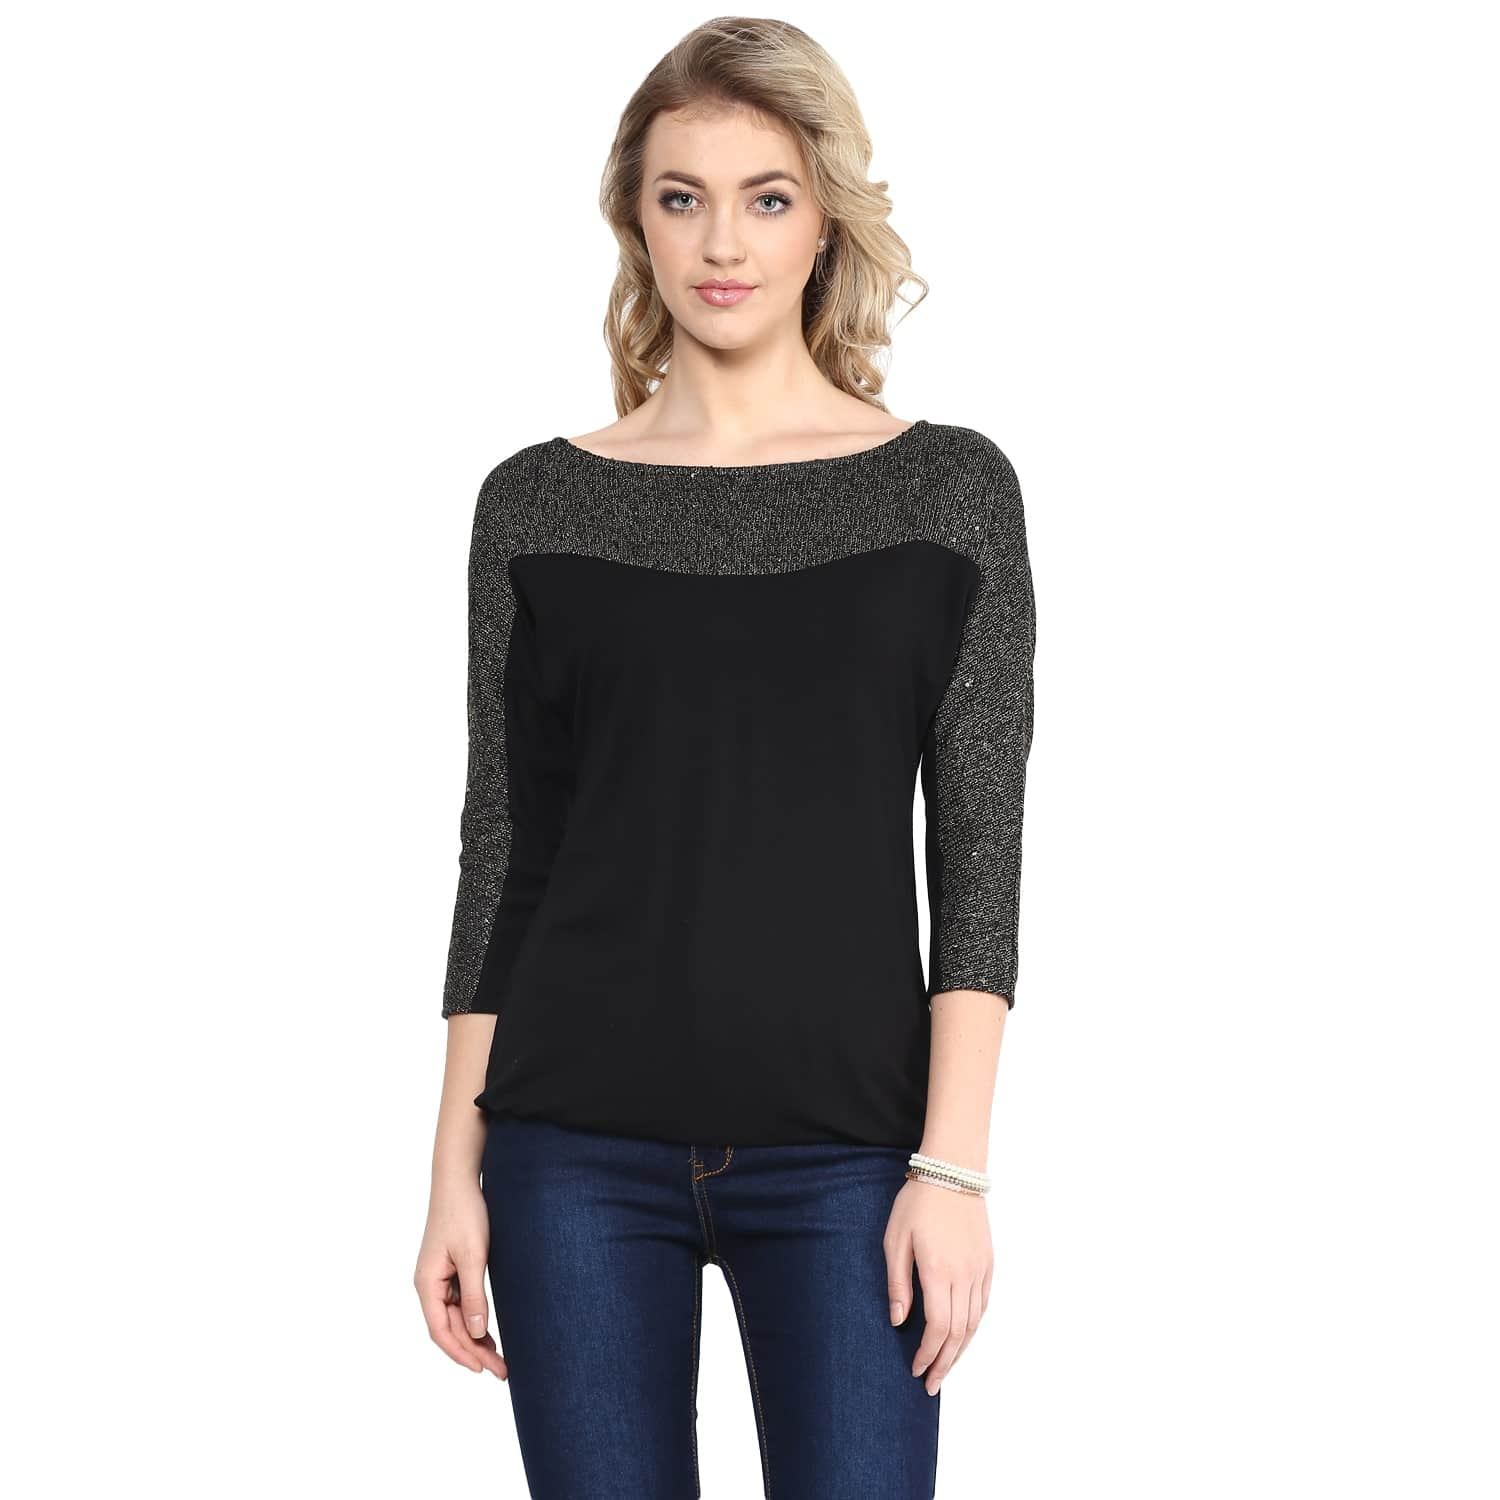 Black Colorblock Sweater Sequin Top